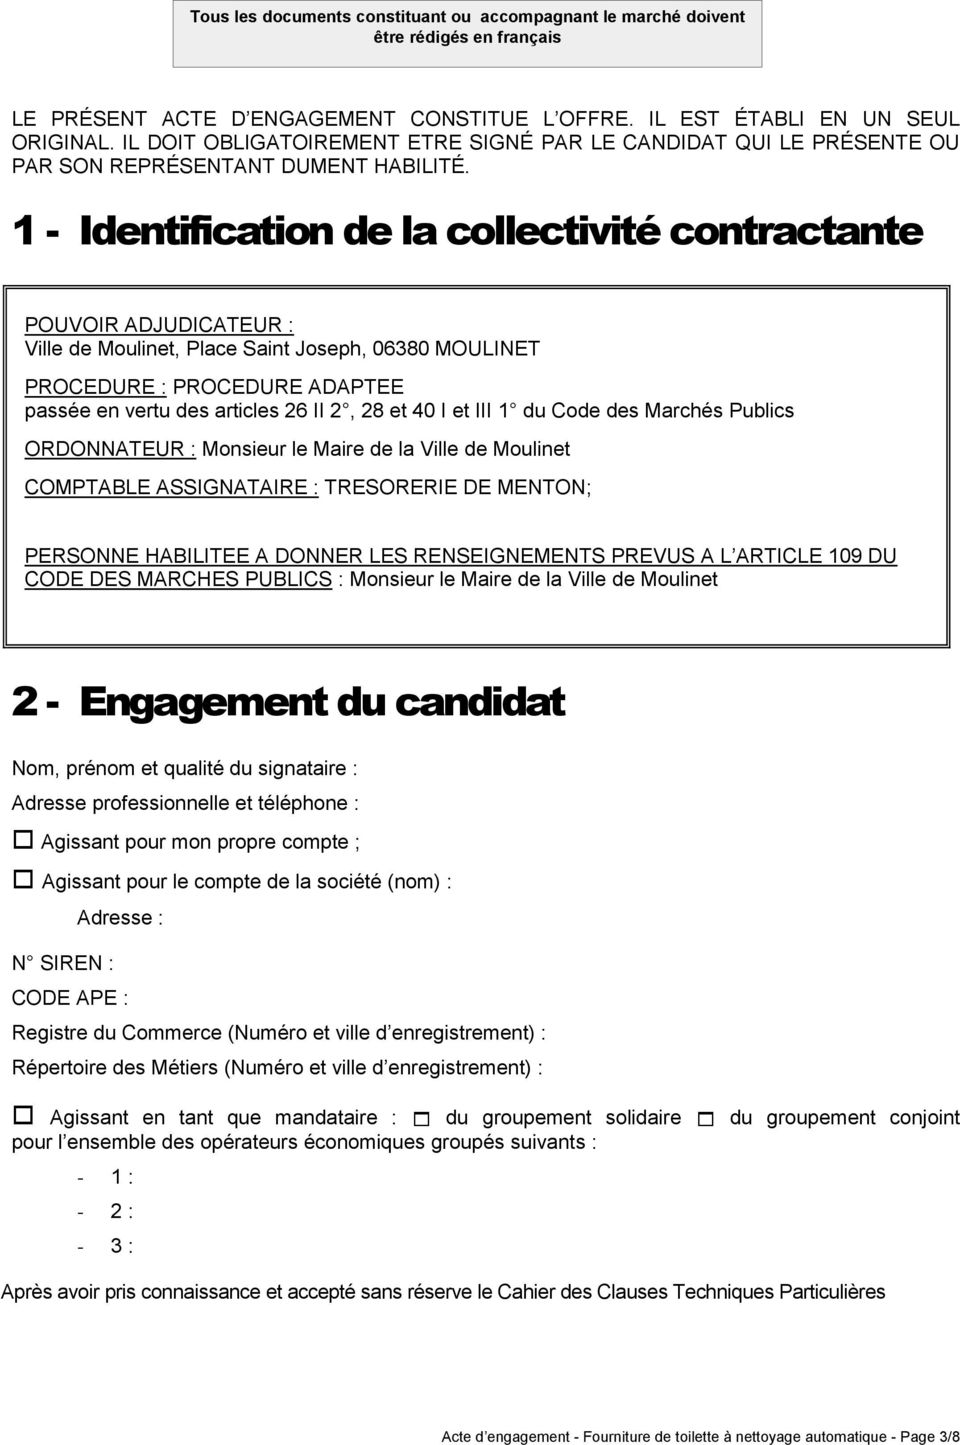 1 - Identification de la collectivité contractante POUVOIR ADJUDICATEUR : Ville de Moulinet, Place Saint Joseph, 06380 MOULINET PROCEDURE : PROCEDURE ADAPTEE passée en vertu des articles 26 II 2, 28